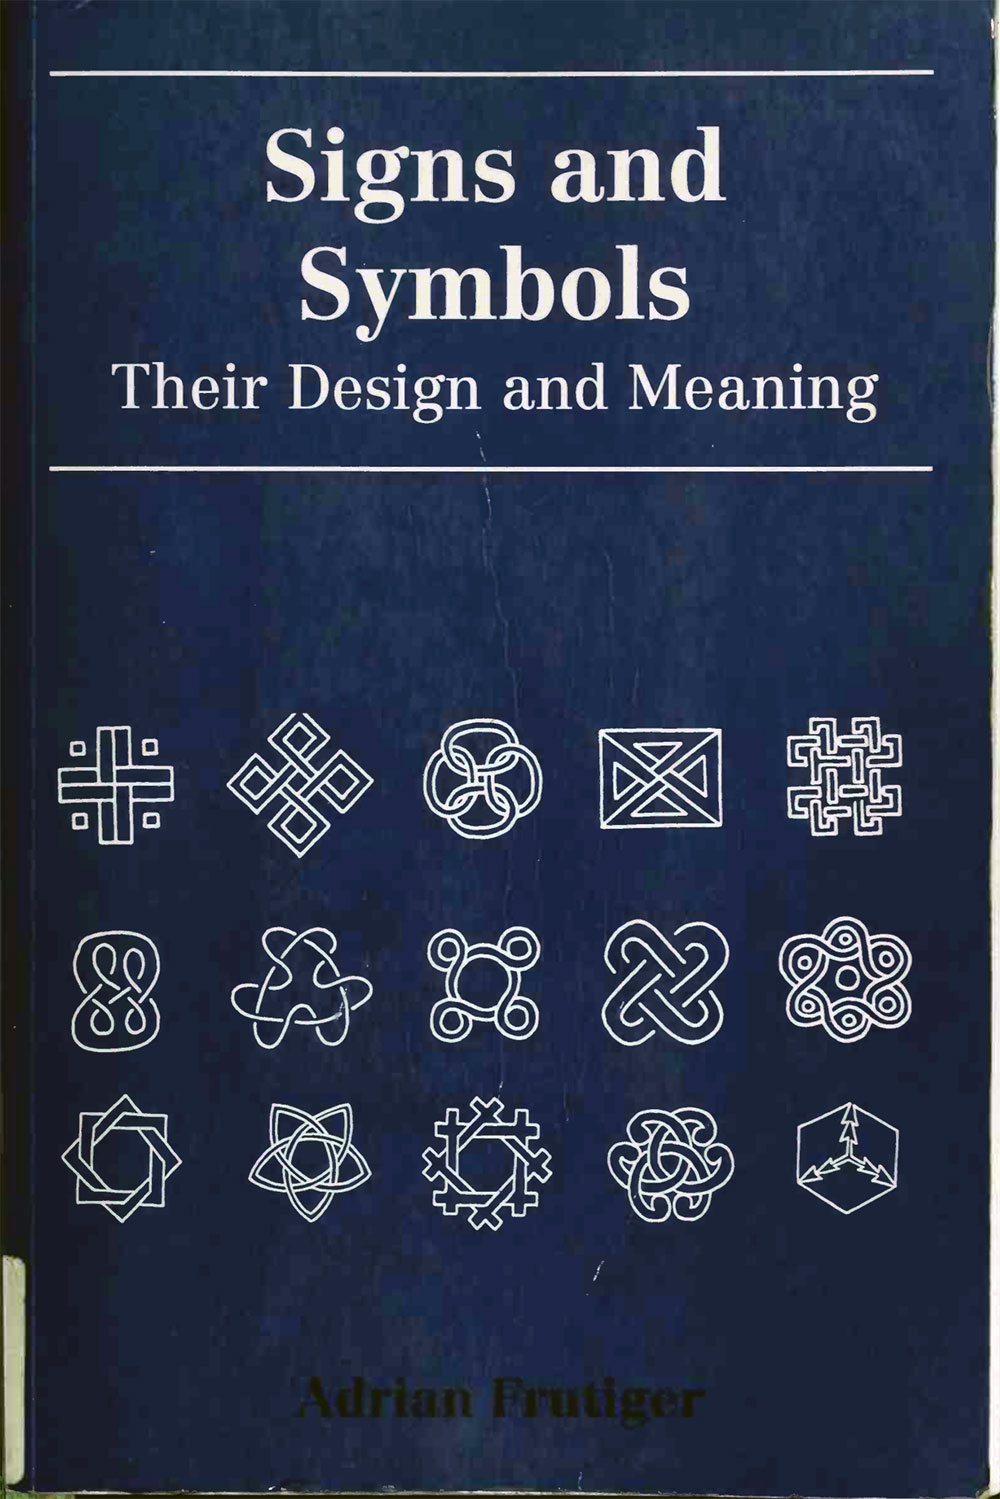 Signs and Symbols book, by Adrian Frutiger